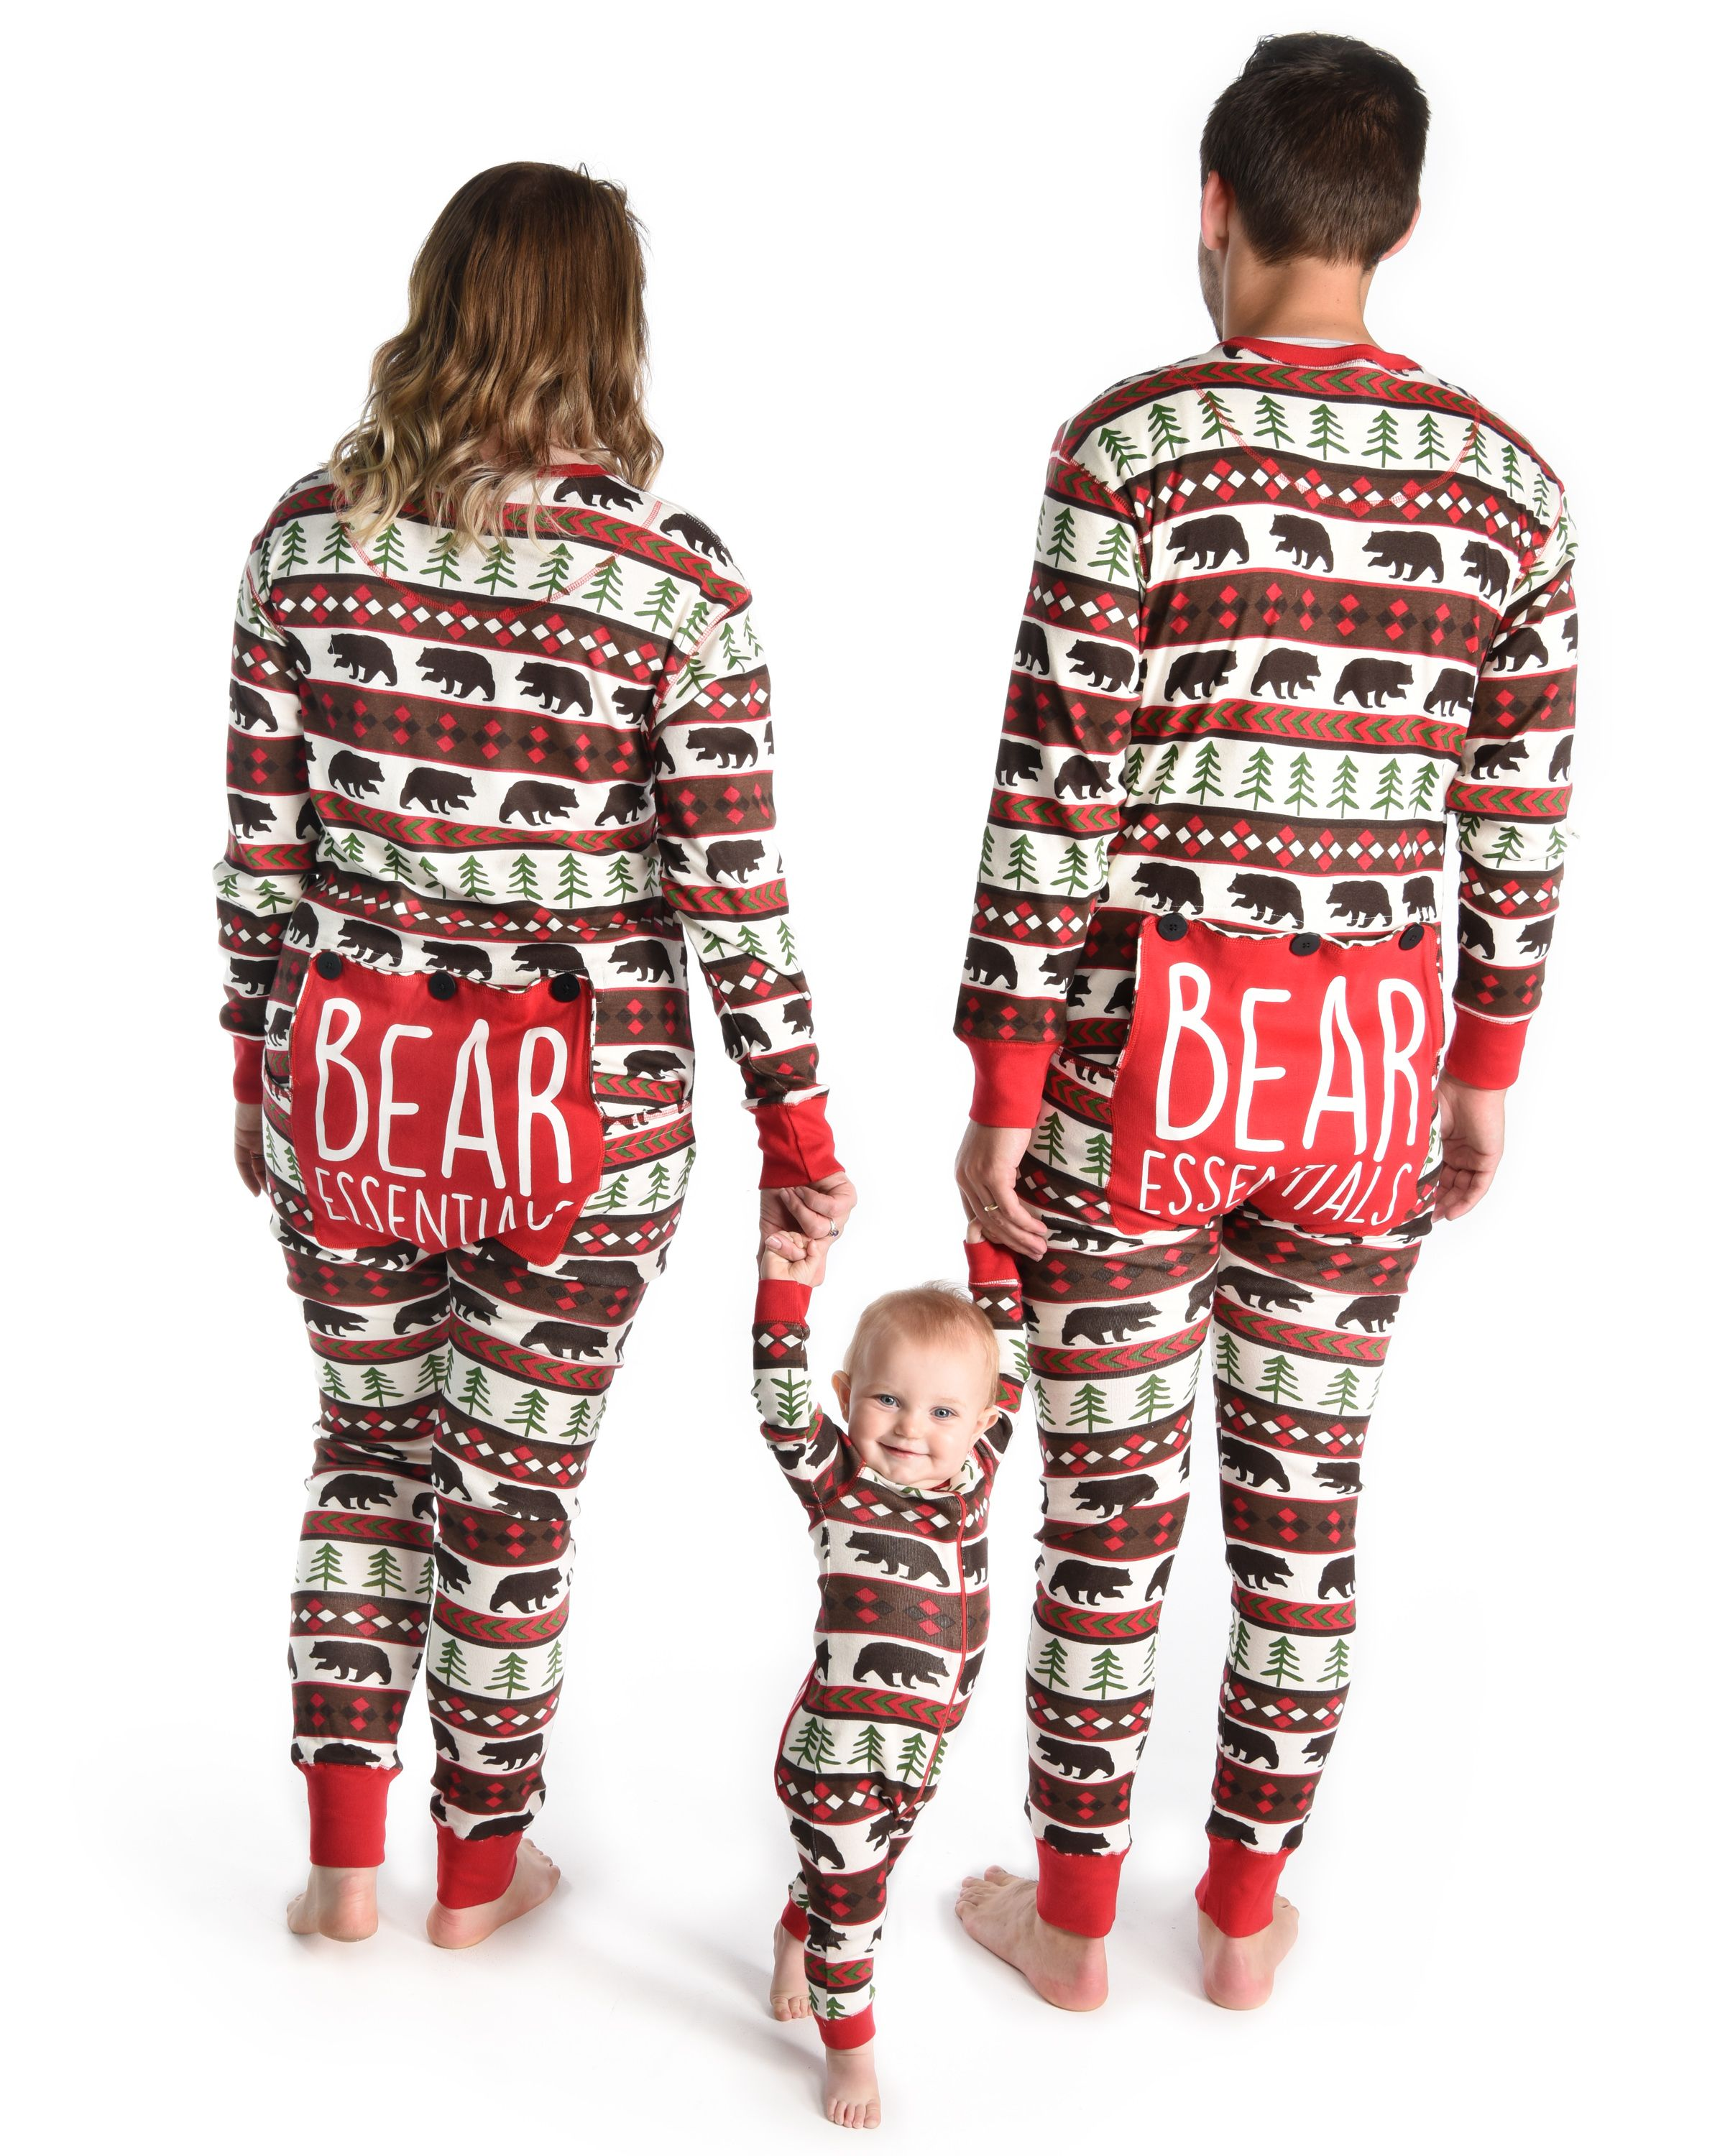 899288727b Fun pajama sets for the whole family! Get together with coordinating pjs  for every men